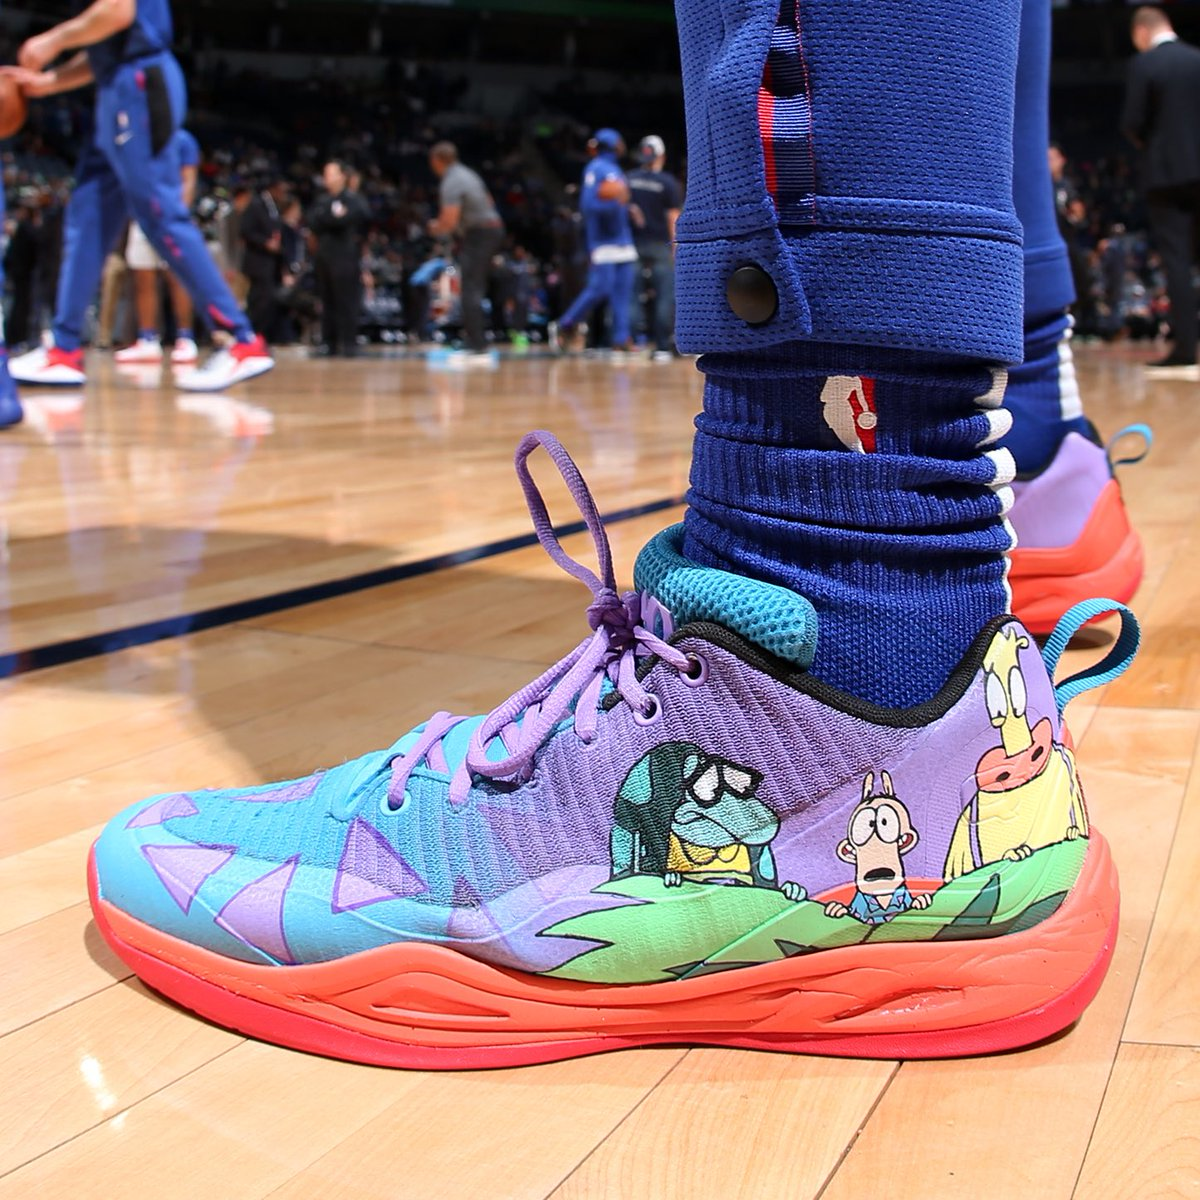 """09c36acf6806b8  SoleWatch   LangGalloway10 in """"Rocko s Modern Life"""" Q4s by  andr3wtl."""